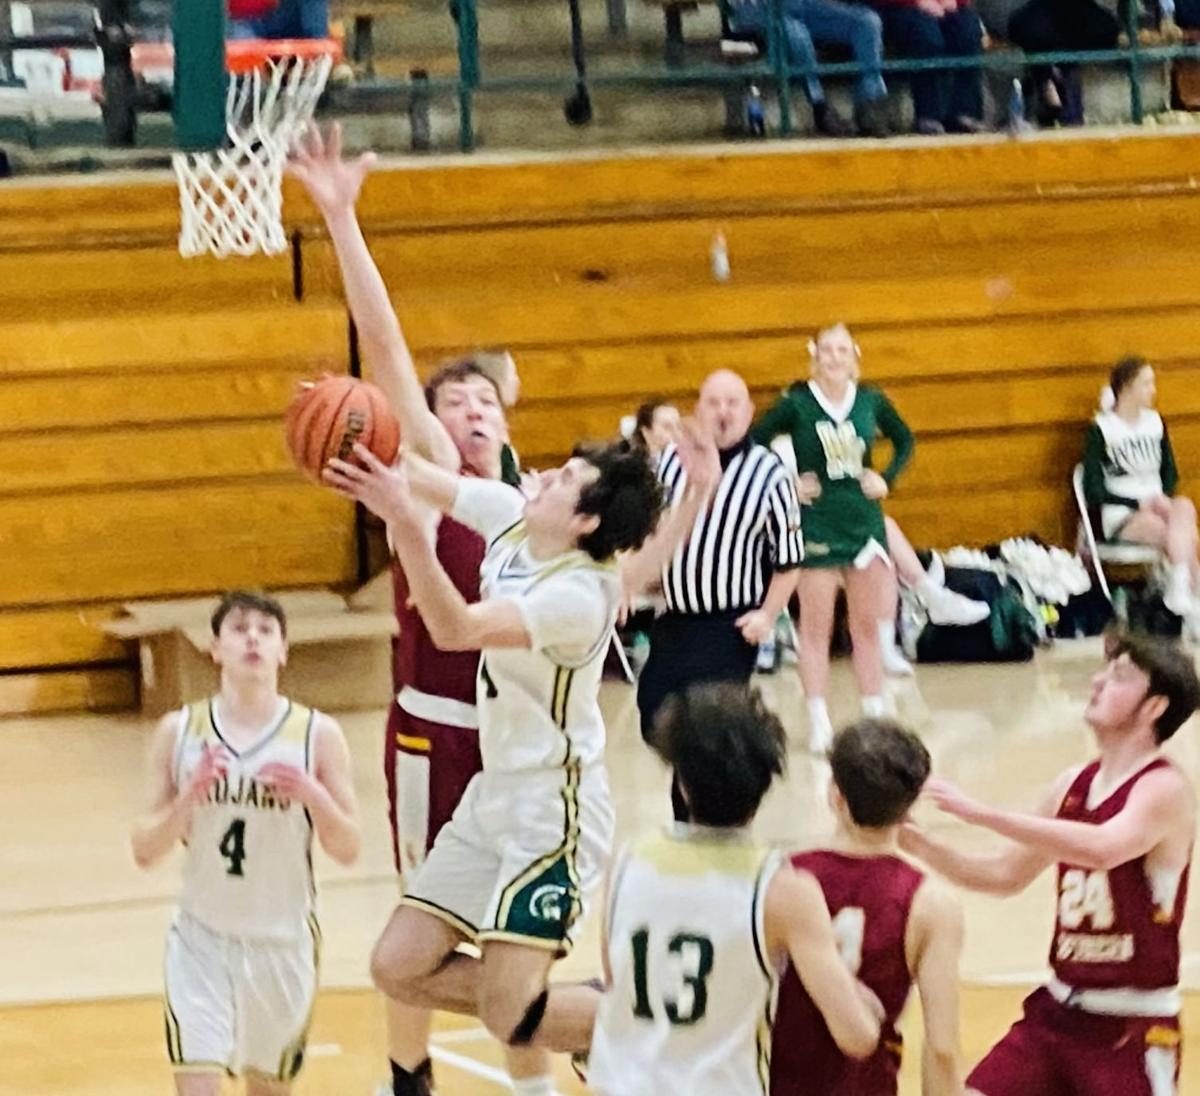 Coltin Page goes up for layup vs. Brindle